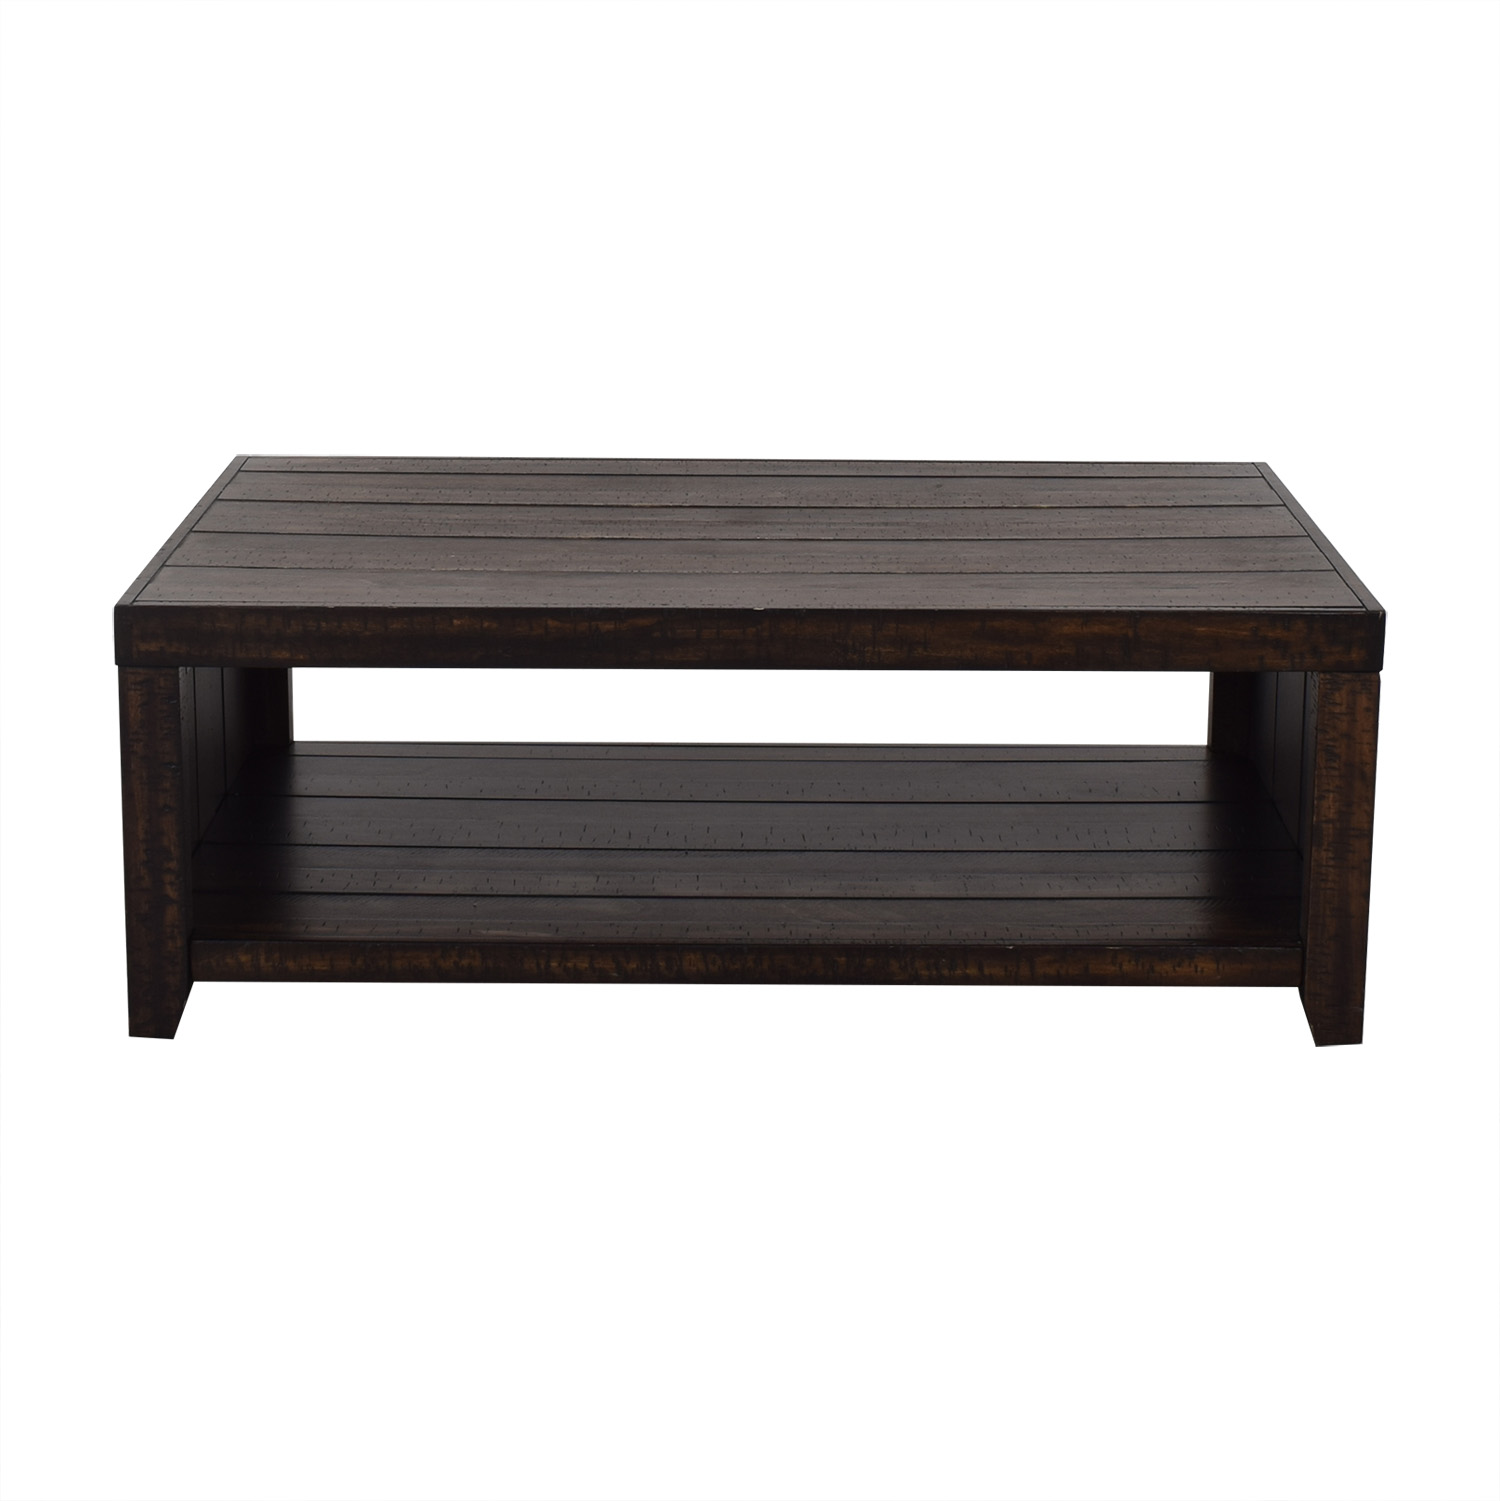 West Elm West Elm Frame Coffee Table ma